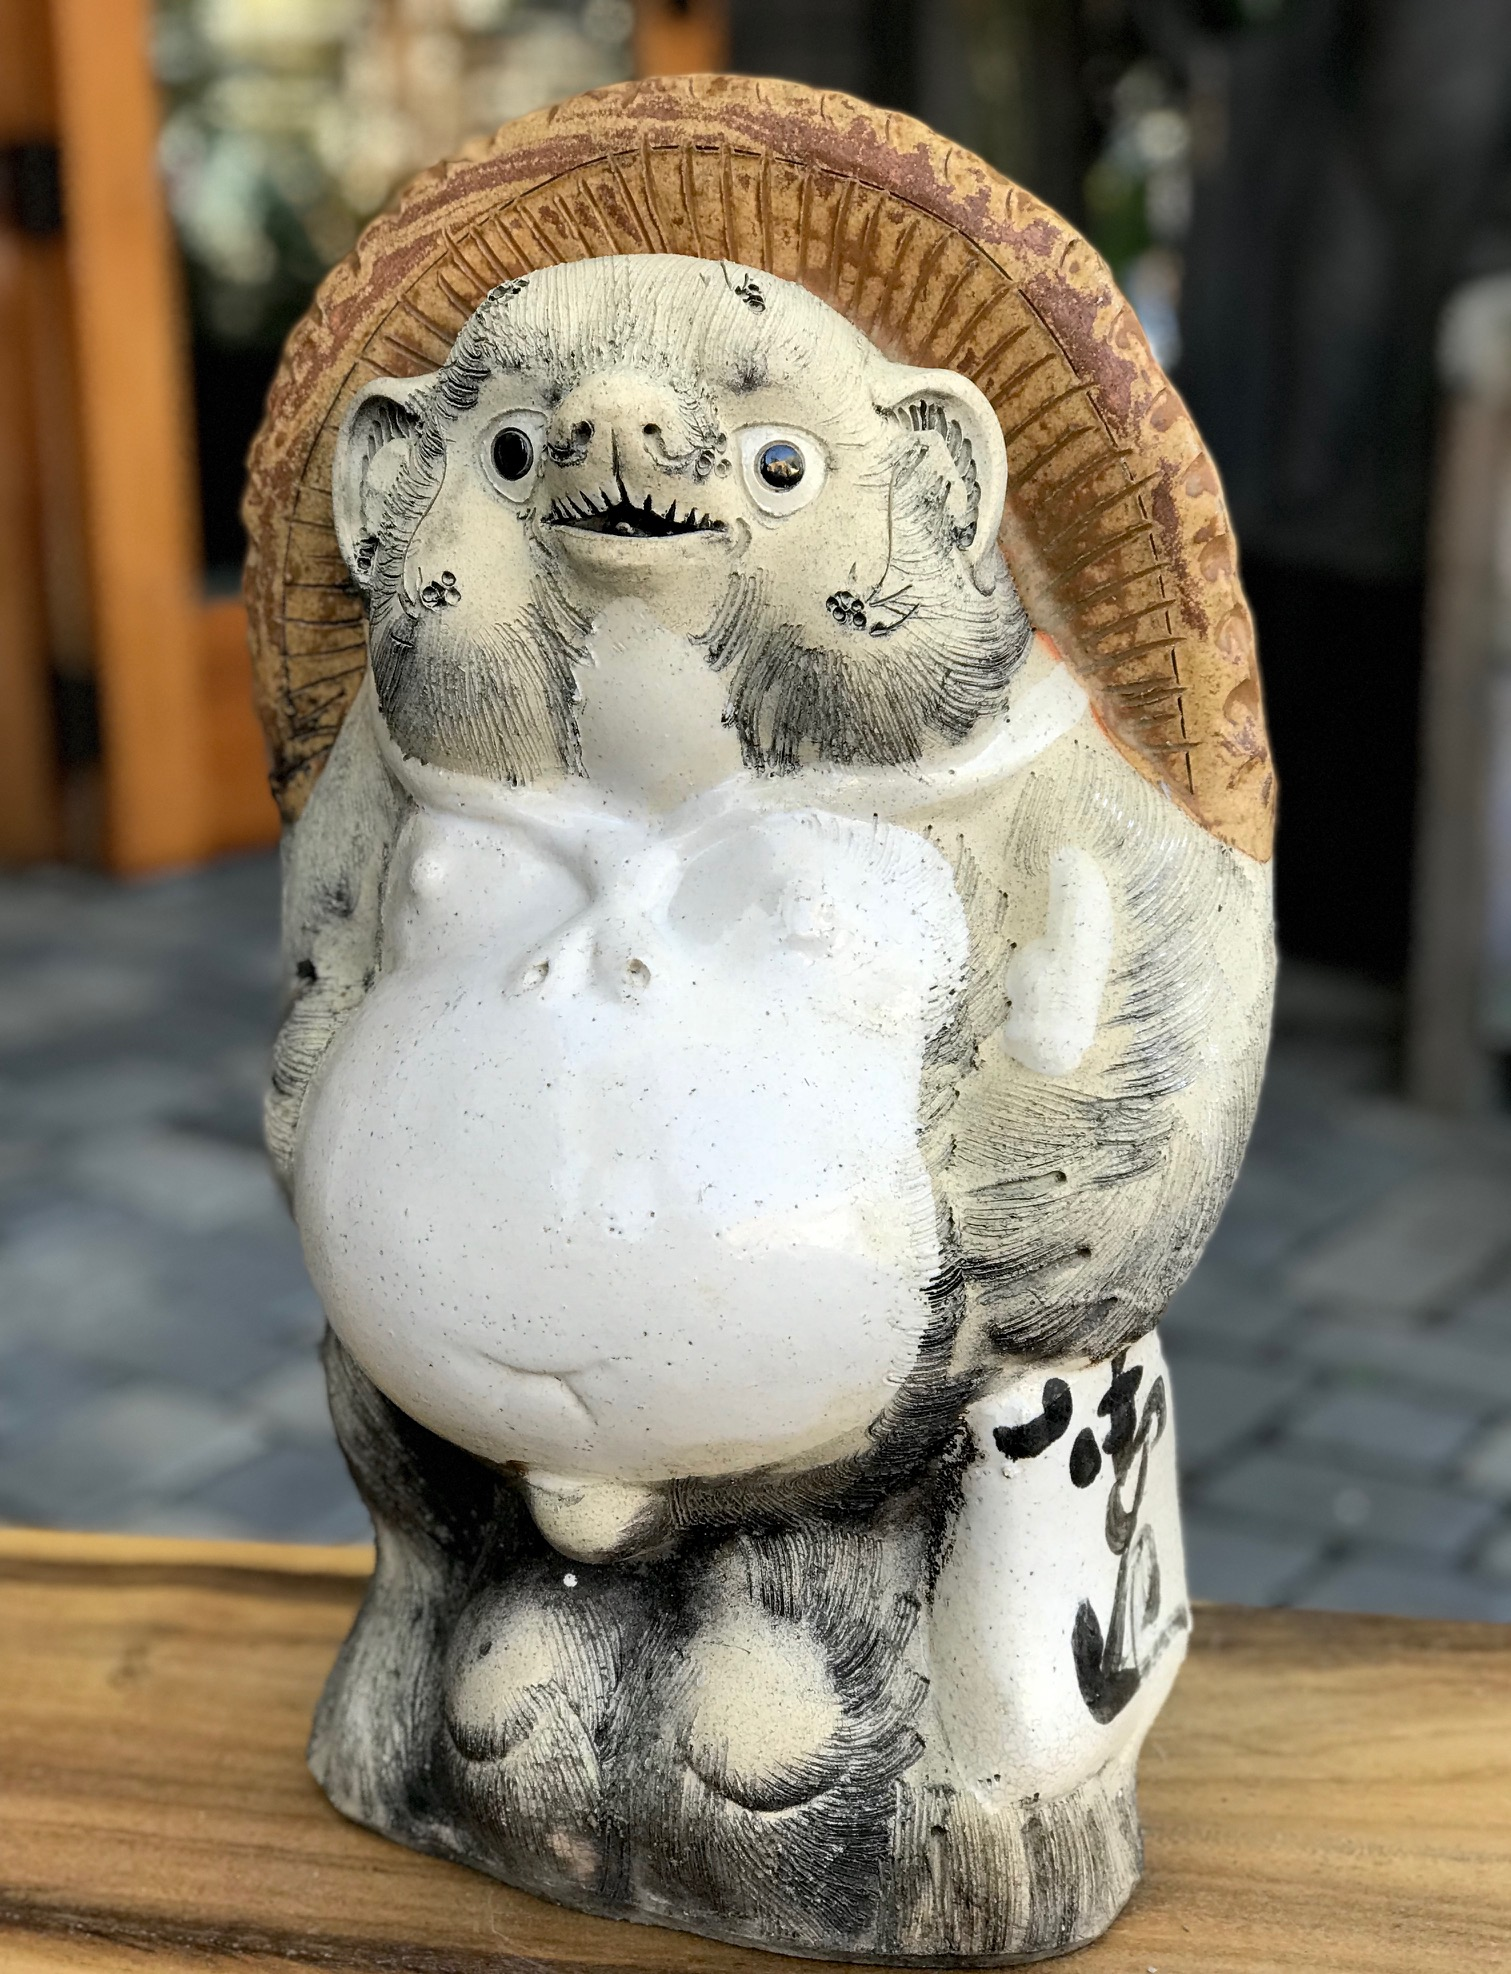 """Shigaraki Tanuki, Tanuki have a very complex and interesting folkloric history. While largely unheard of in the states, Tanuki have been among the most significant characters in Japan since ancient times. Contemporary Tanuki are primarily a welcoming symbol of prosperity. In the mid 20th century the character was adapted, both visually and symbolically, to suit modern culture and, although they retain much of their prankster persona from the original 16th century creatures, they are much more benign. They have a long list of supernatural powers, most notable shape-shifting. Ancient Tanuki, humorously portrayed in block prints are now mostly found in museums and private collections. Tanuki statues are often found in restaurant or shop windows and outside temples. Famous for getting drunk and not paying their bills, they are usually portrayed wearing a straw hat and carrying a flask of sake and a ledger of promissory notes. Thus they can also serve as cautionary figures against the hazards of overindulging in alcohol. They always have big bellies and humorously large testicles which they use as drums. 18 1/2"""" x 11"""" x 11"""", $575., thedavidalancollection.com , solana beach, ca"""